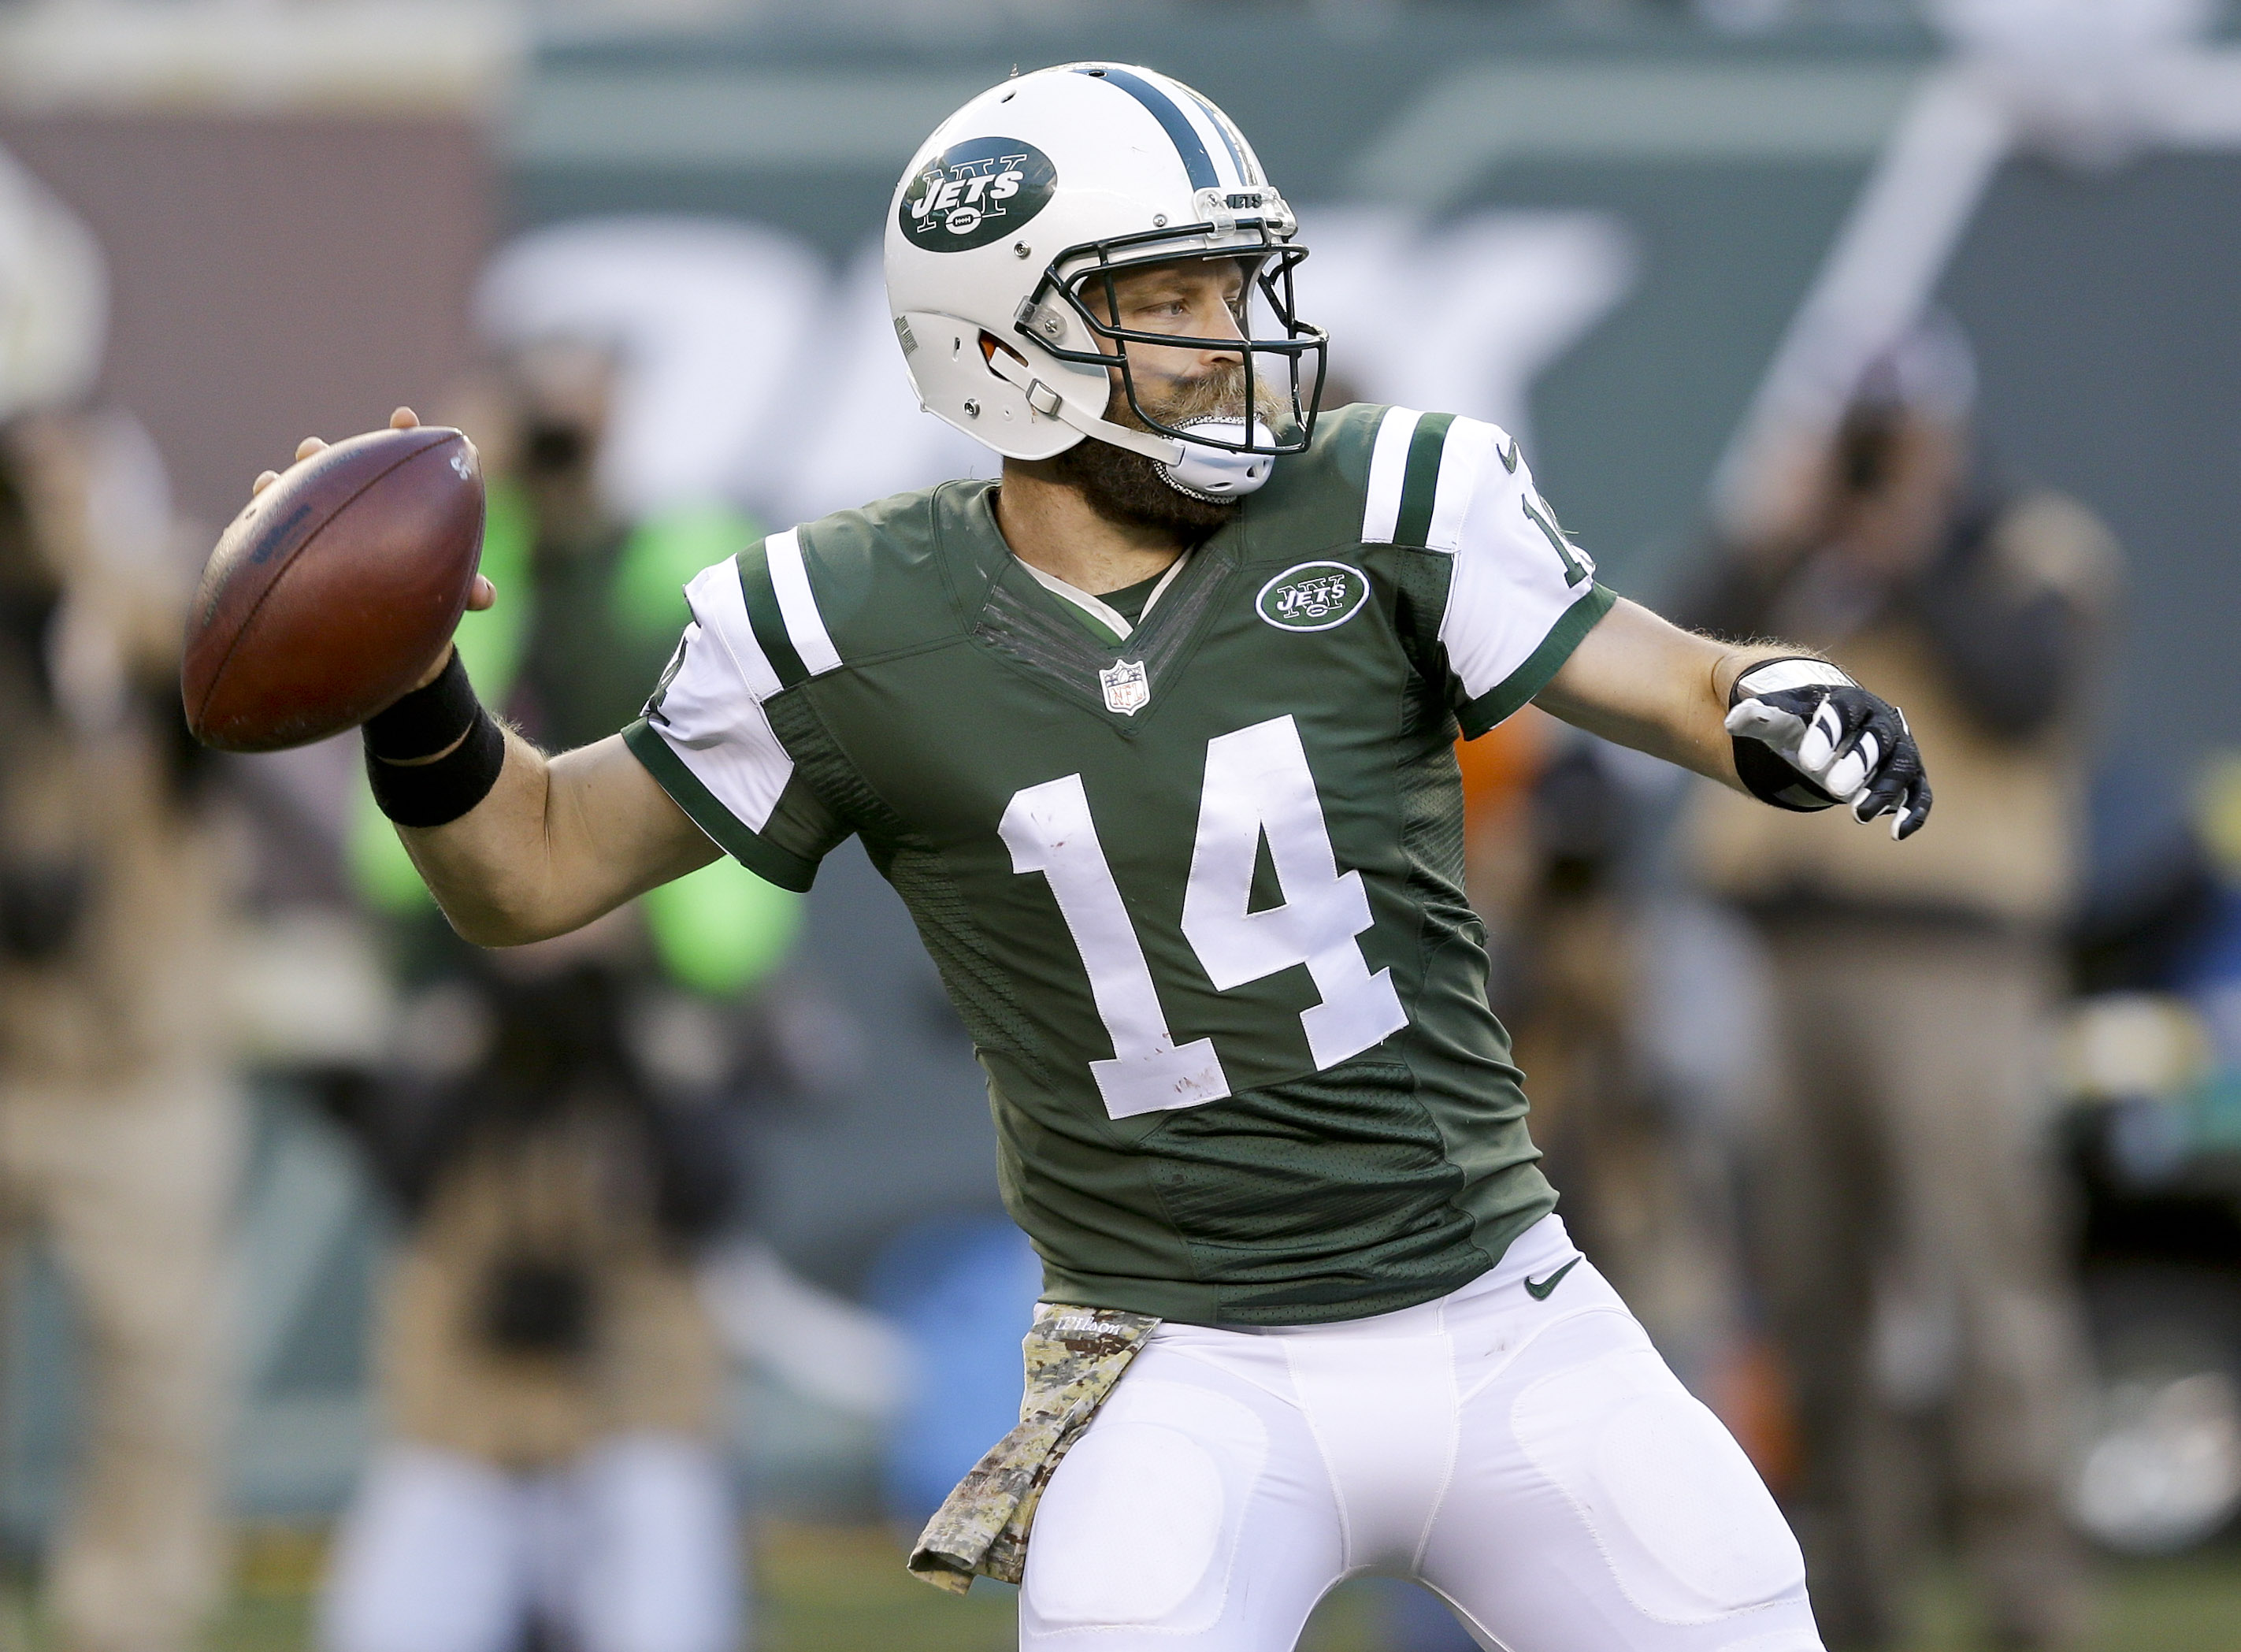 New York Jets quarterback Ryan Fitzpatrick (14) passes against the Jacksonville Jaguars during the fourth quarter of an NFL football game, Sunday, Nov. 8, 2015, in East Rutherford, N.J. The Jets won 28-23. (AP Photo/Seth Wenig)